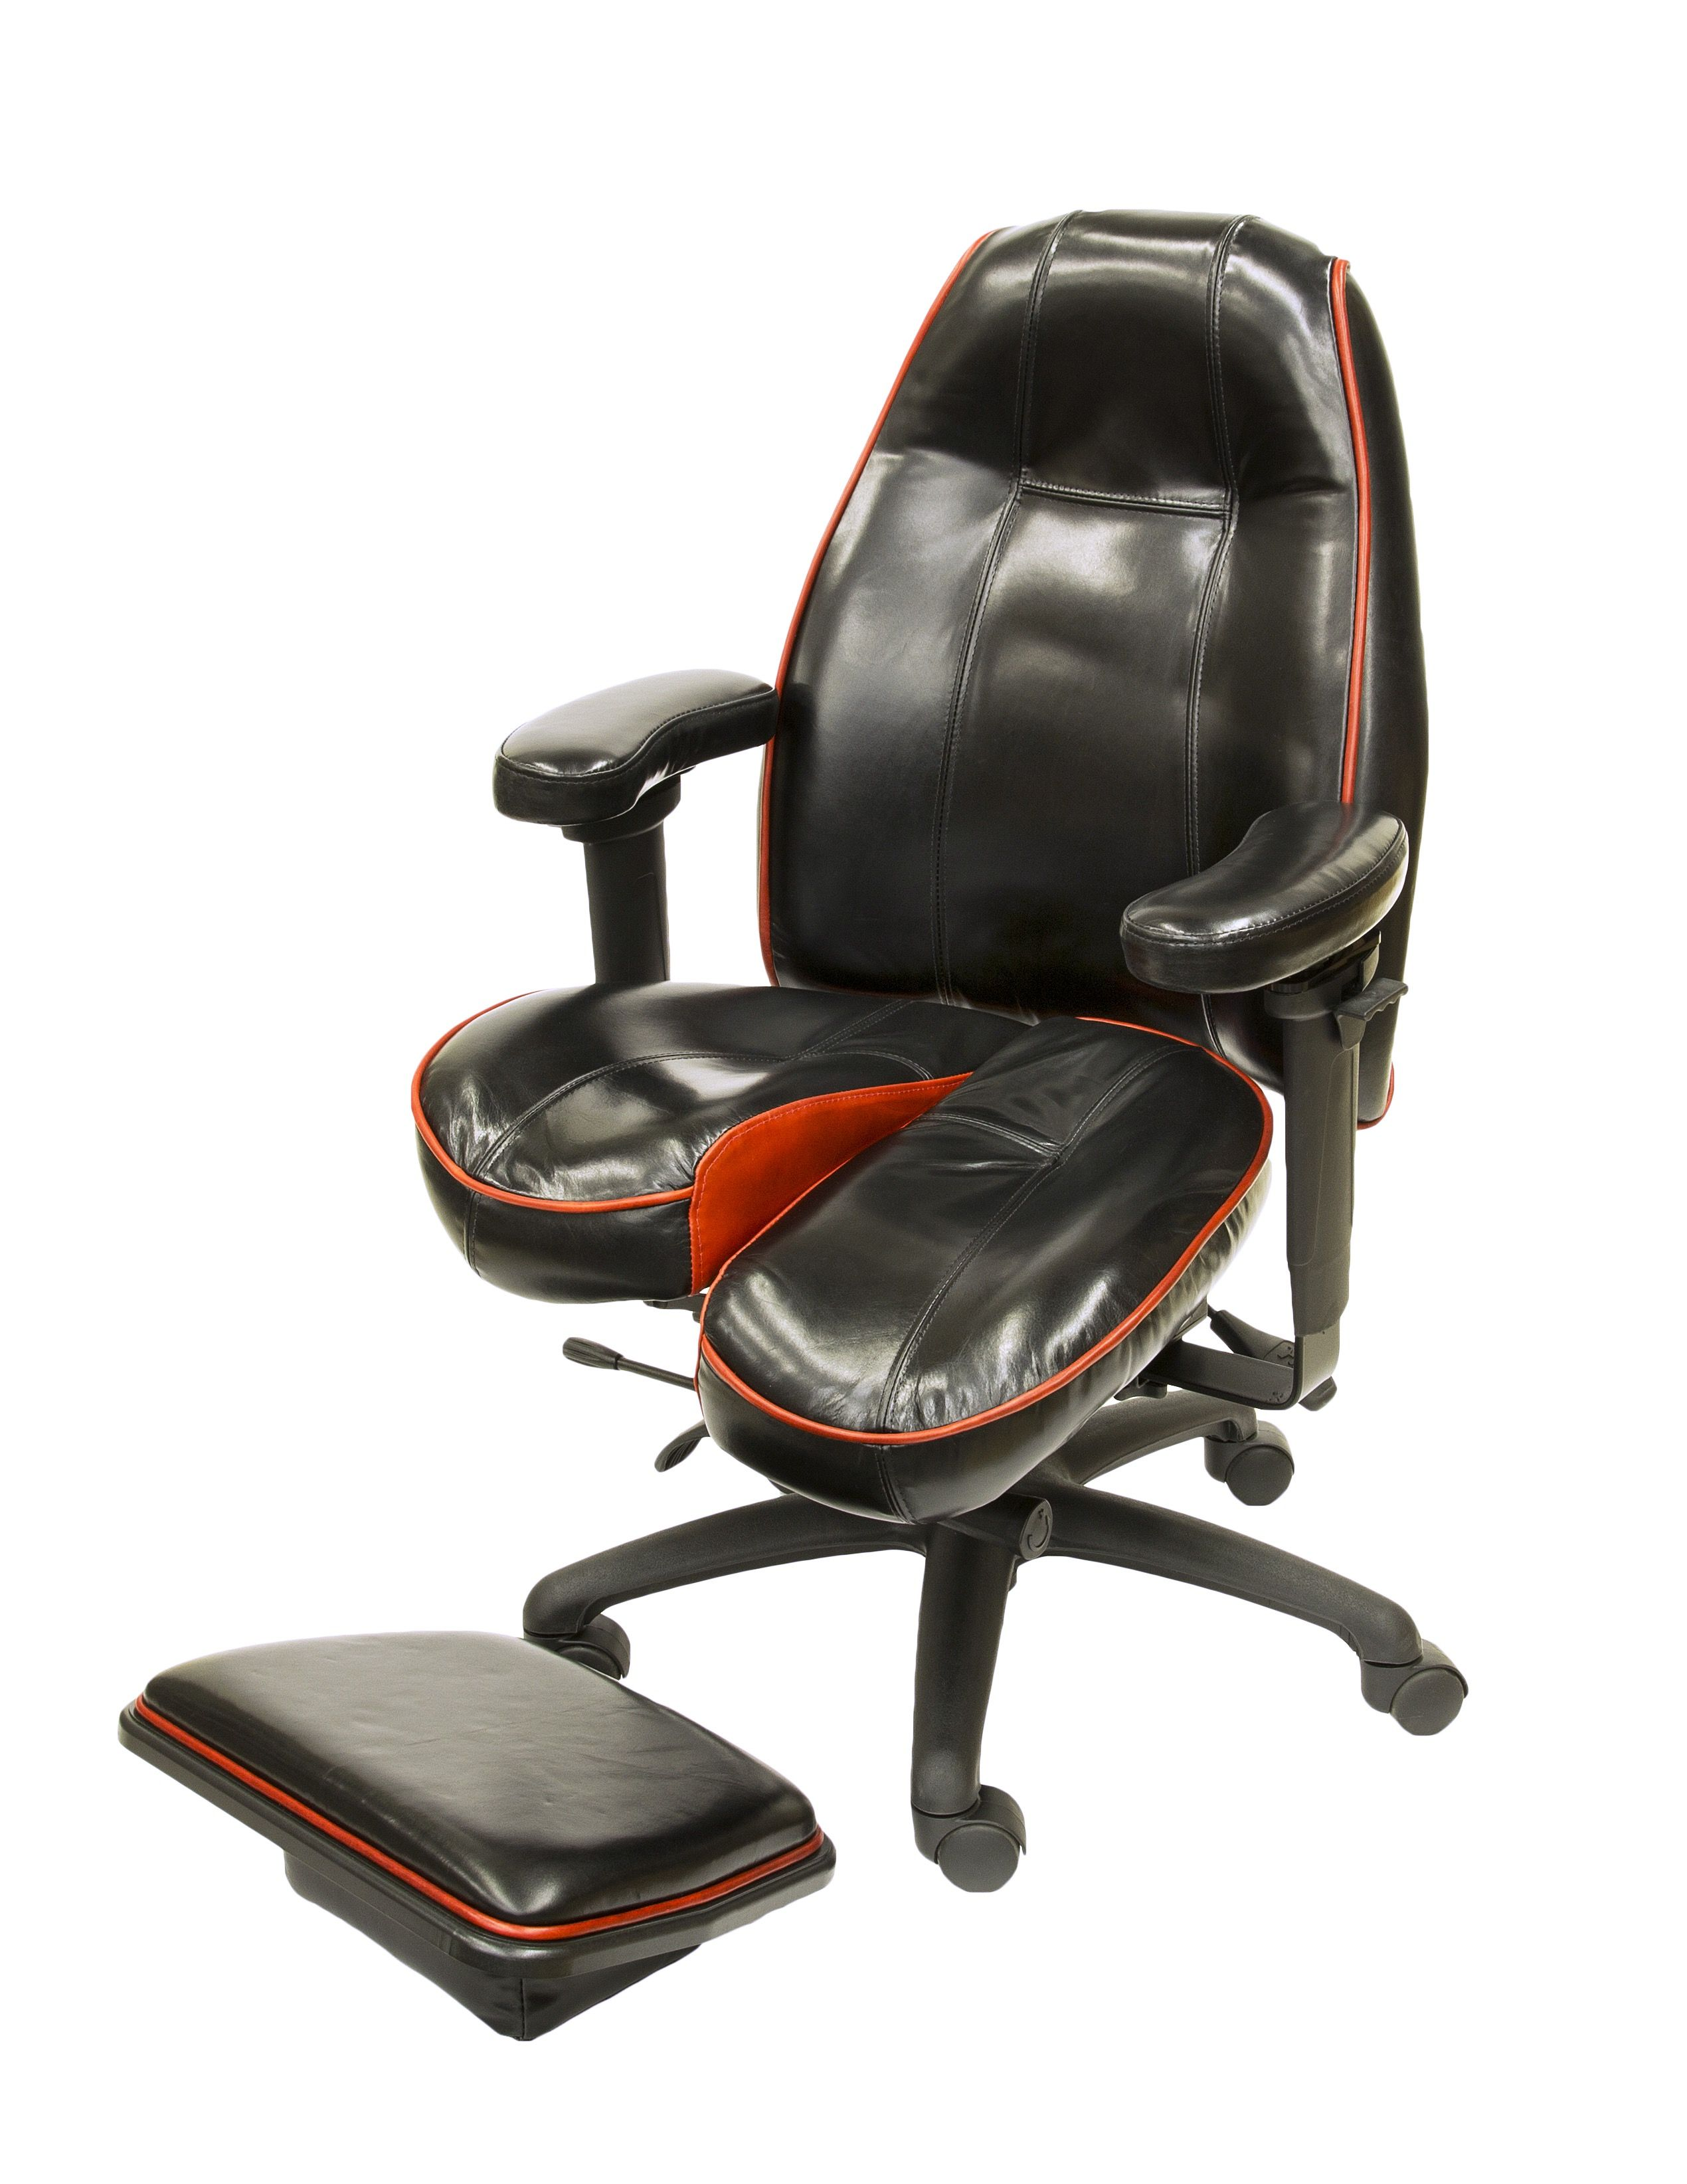 custom office chair. LIFEFORM Chairs Offers Personalized Custom Office \u0026 Desk Tailored Specifically To The Individual\u0027s Needs And Desires. Chair